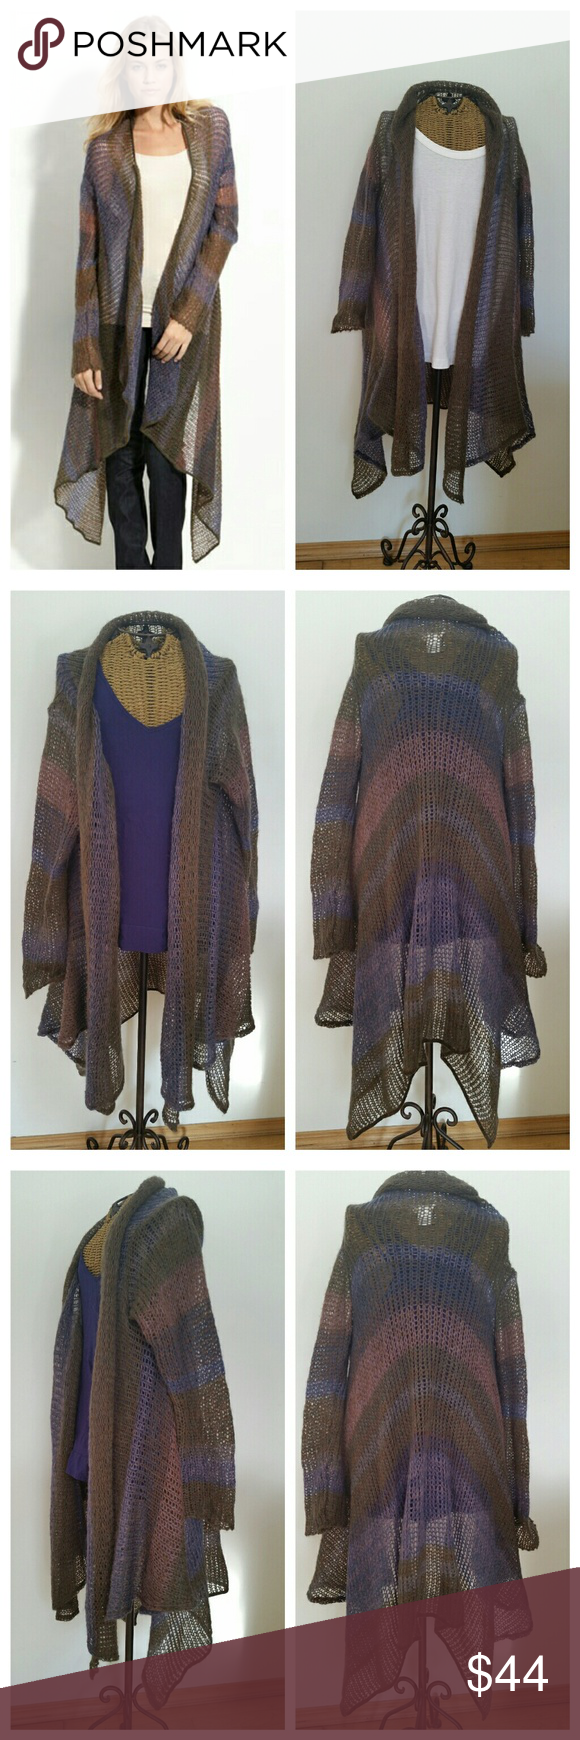 """Village Road long airy weave cardigan sweater Gorgeous sweater Sz S/M Airy knit lightweight & soft Multicolor Acrylic mohair polyamide  Underarm to underarm 19"""" Underarm to sleeve end 19"""" Top of shoulder to hem 41"""" at longest point Drape waterfall style Excellent condition village road Sweaters Cardigans"""